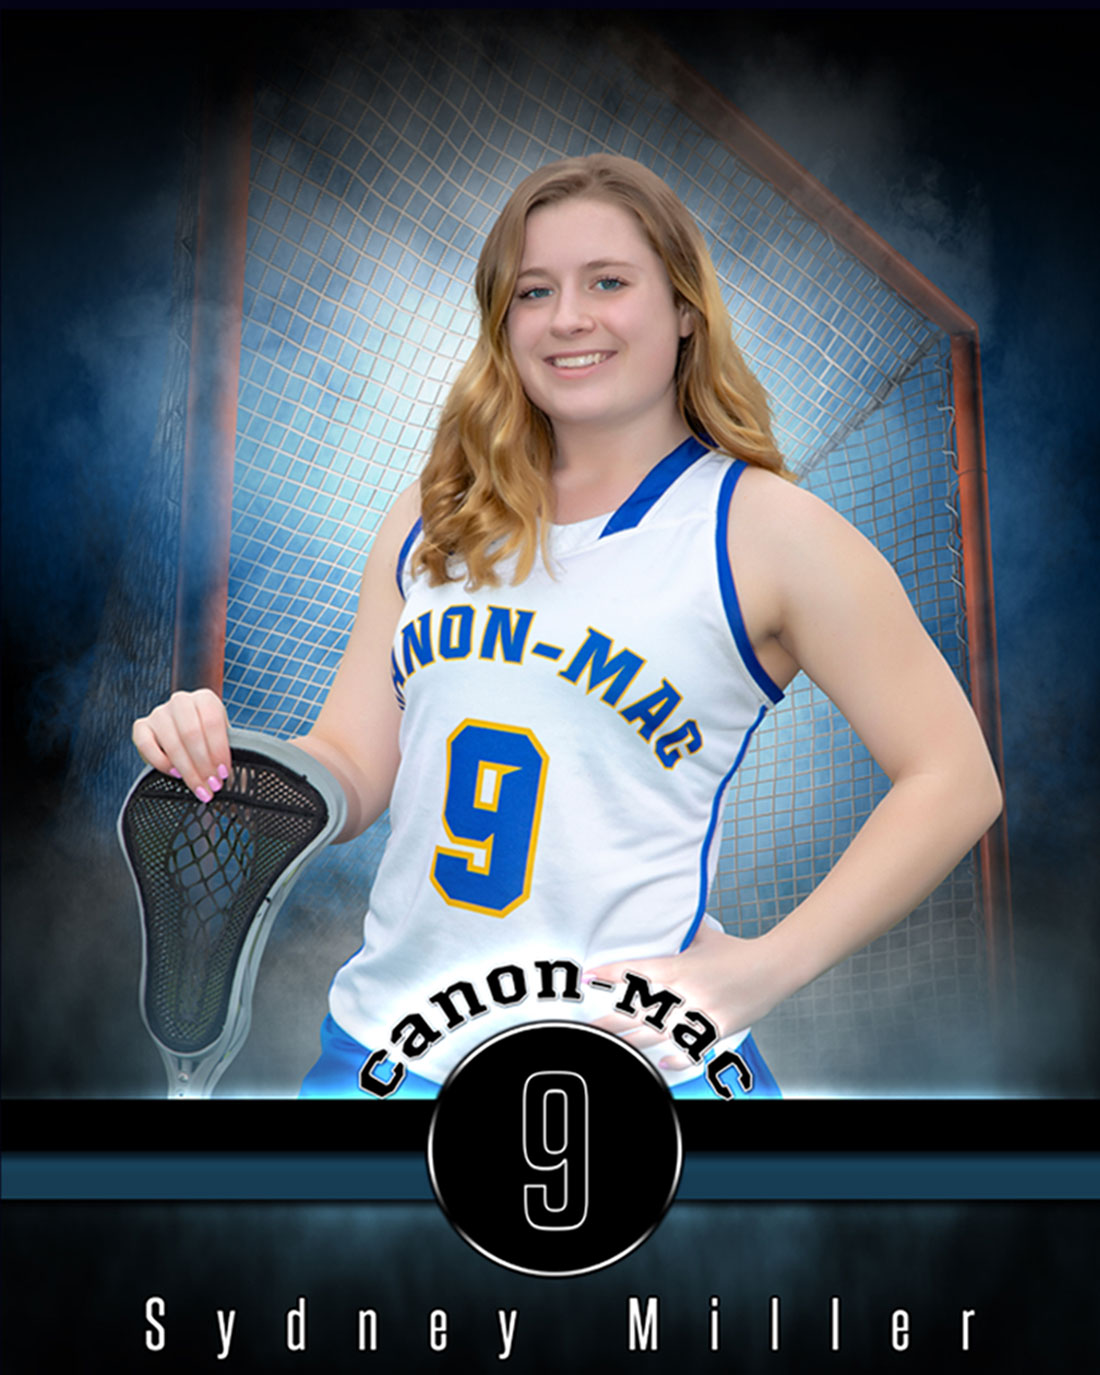 Lacrosse player with a Knock Out sports background